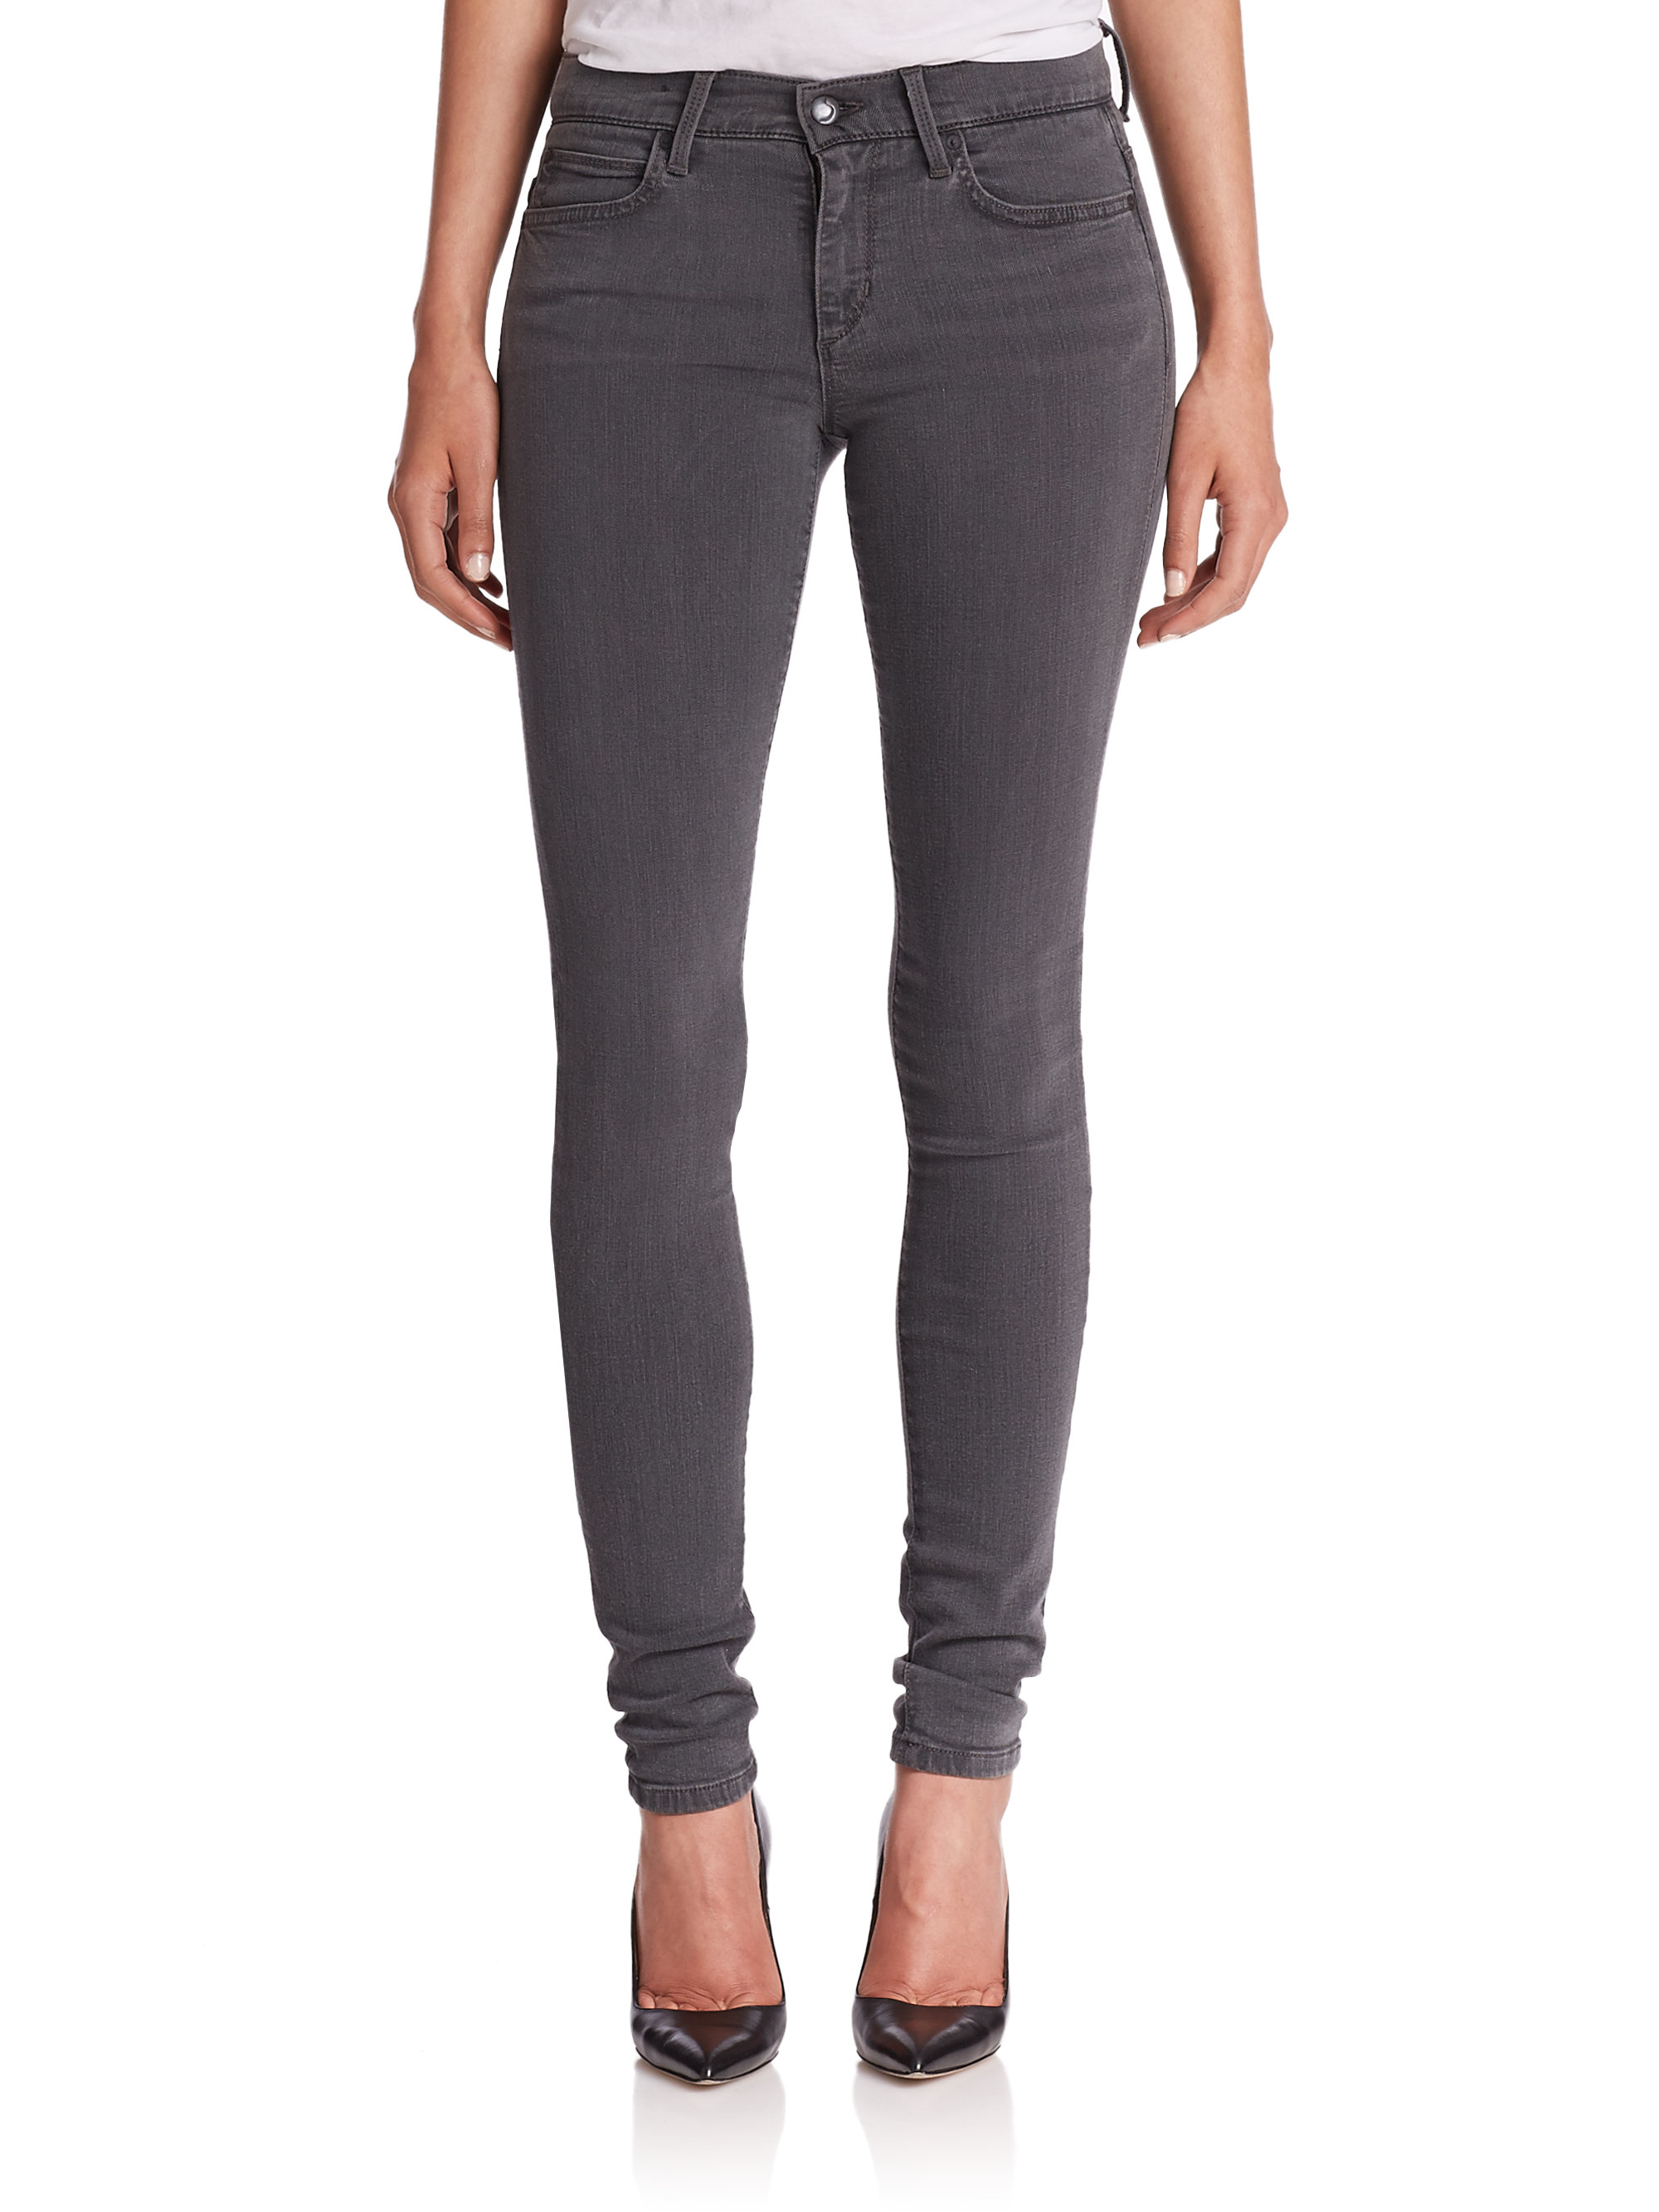 Joe&39s jeans Hello Skinny Jeans in Gray | Lyst